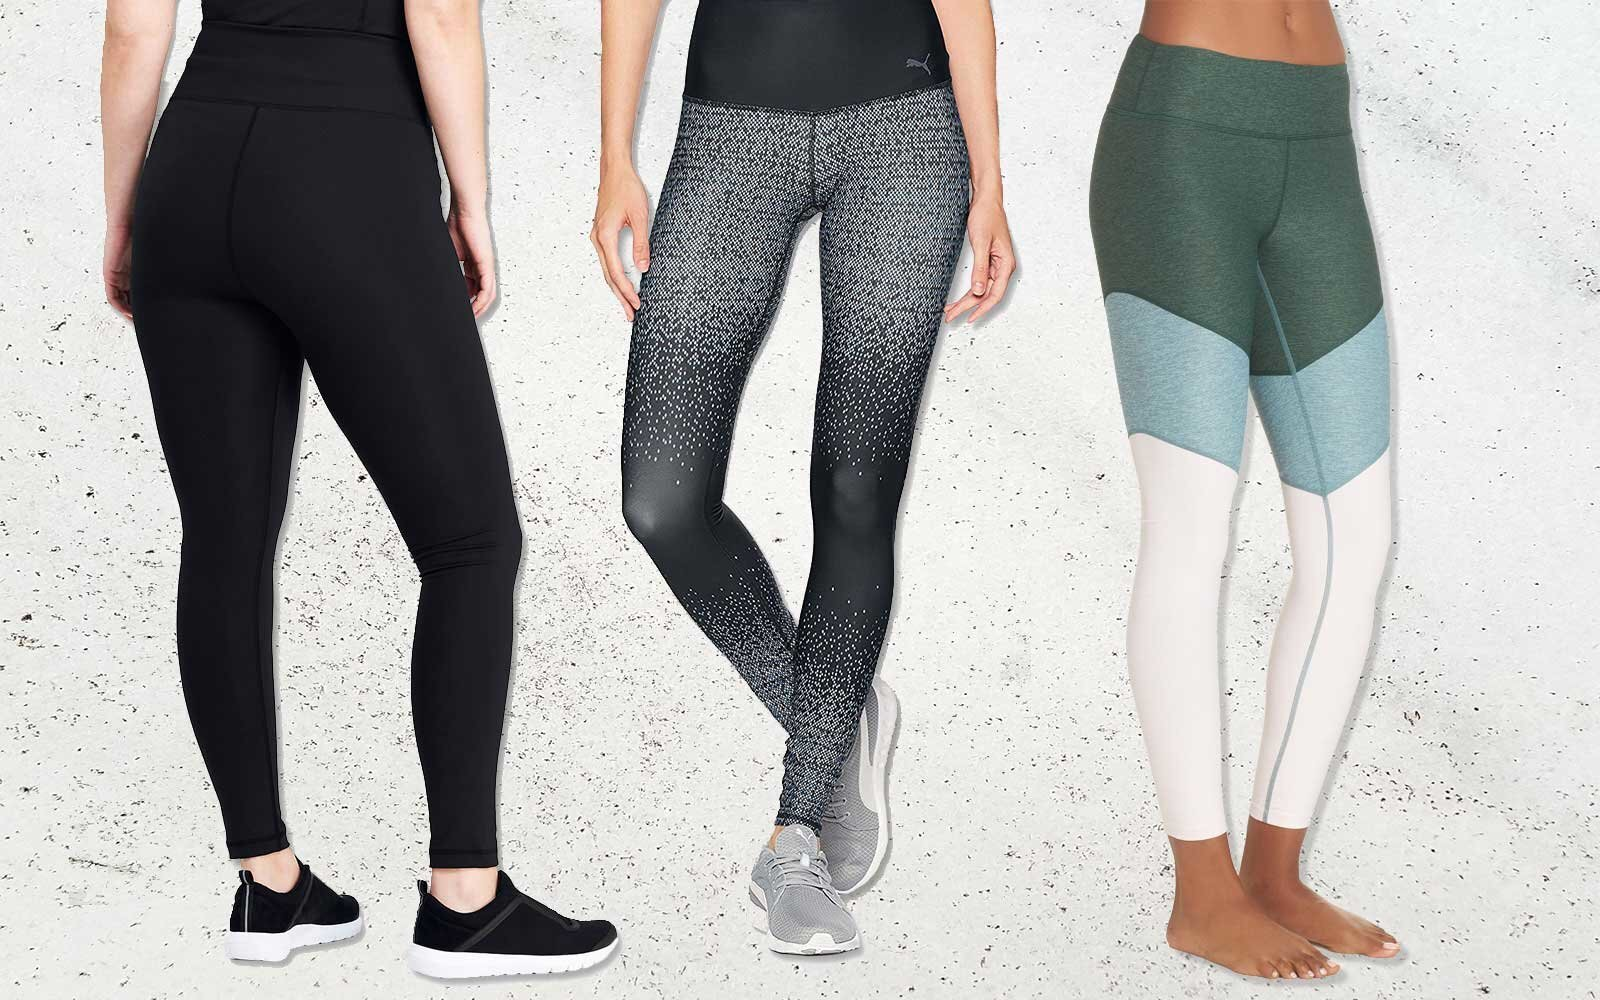 17f0f3ae670213 The Best Women's Compression Leggings for Travel | Travel + Leisure